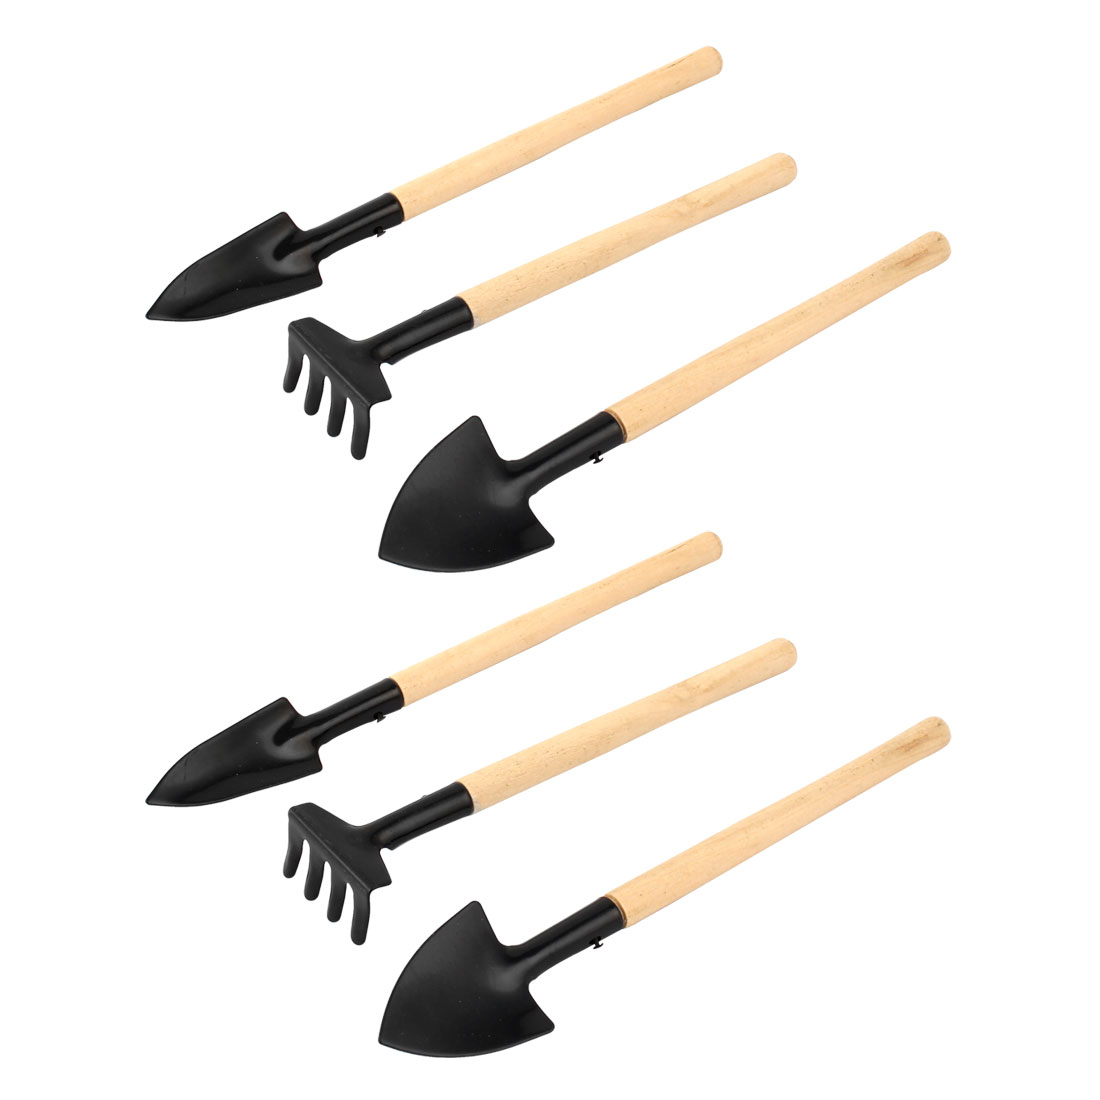 Potted Plant Wood Handle Rake Shovel Digging Trowel Gardening Tool 2 Sets